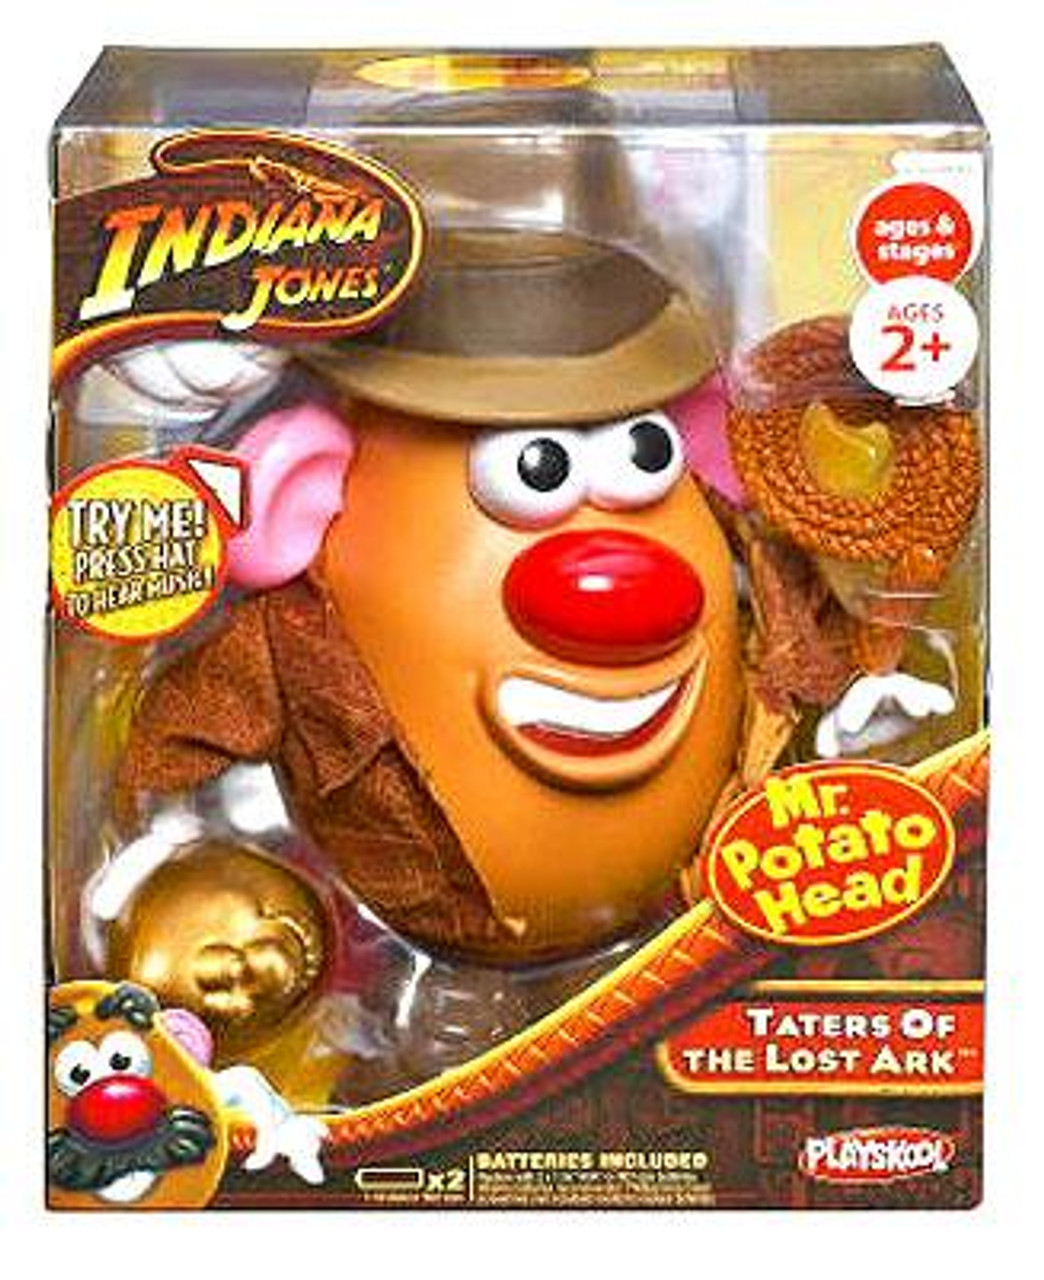 Indiana Jones Taters of the Lost Ark Idaho Jones Spud Mr. Potato Head